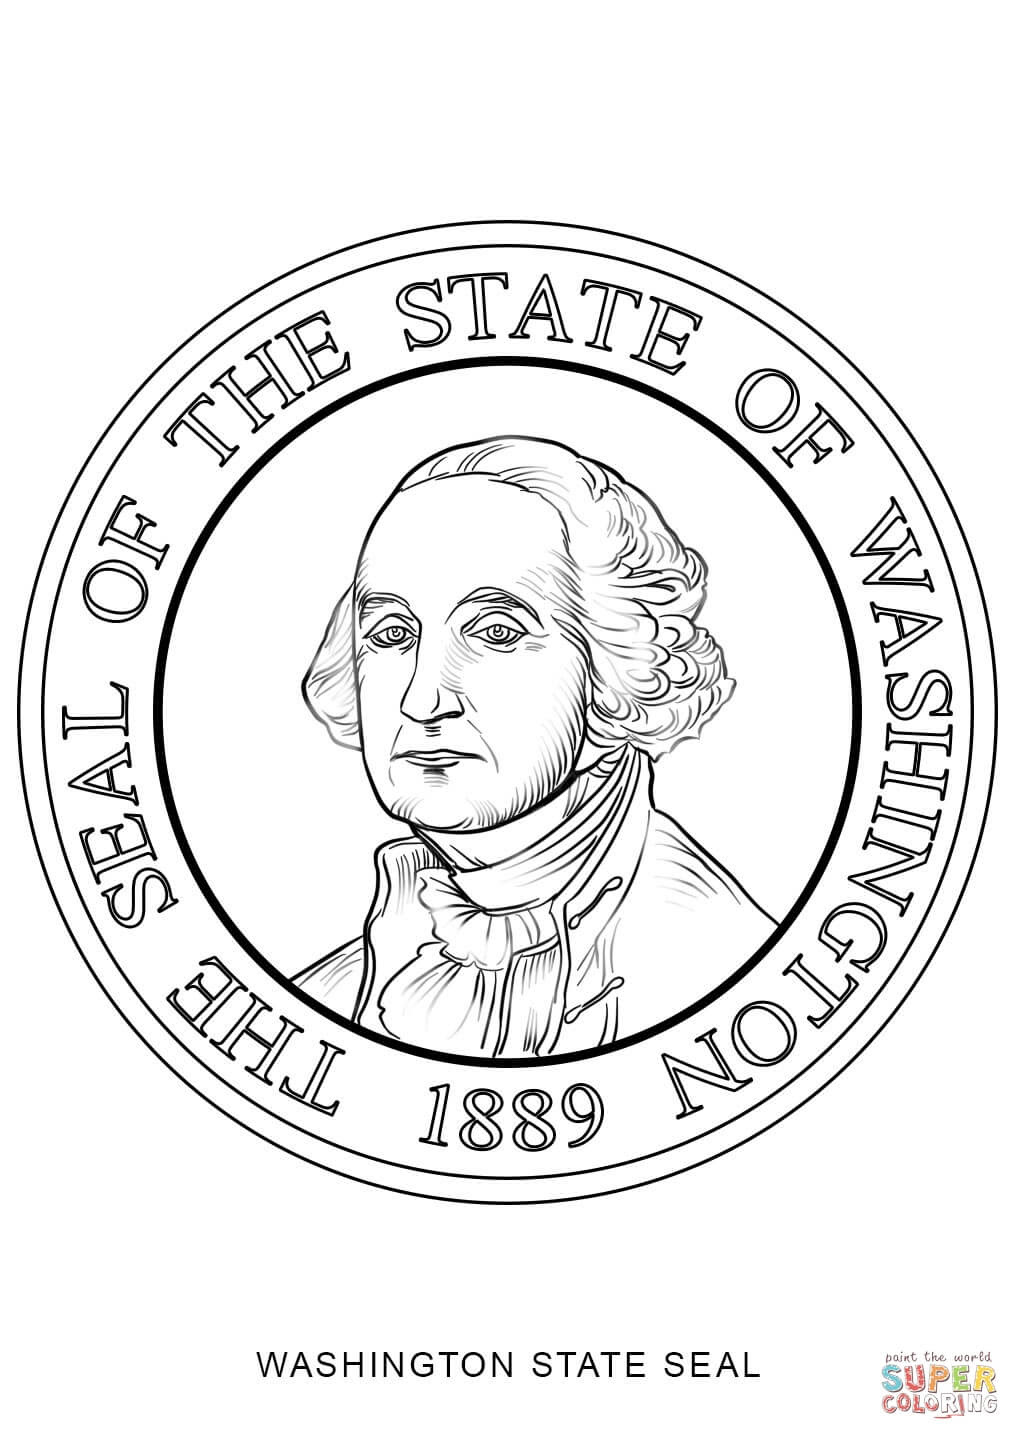 nc state seal coloring pages - photo#17